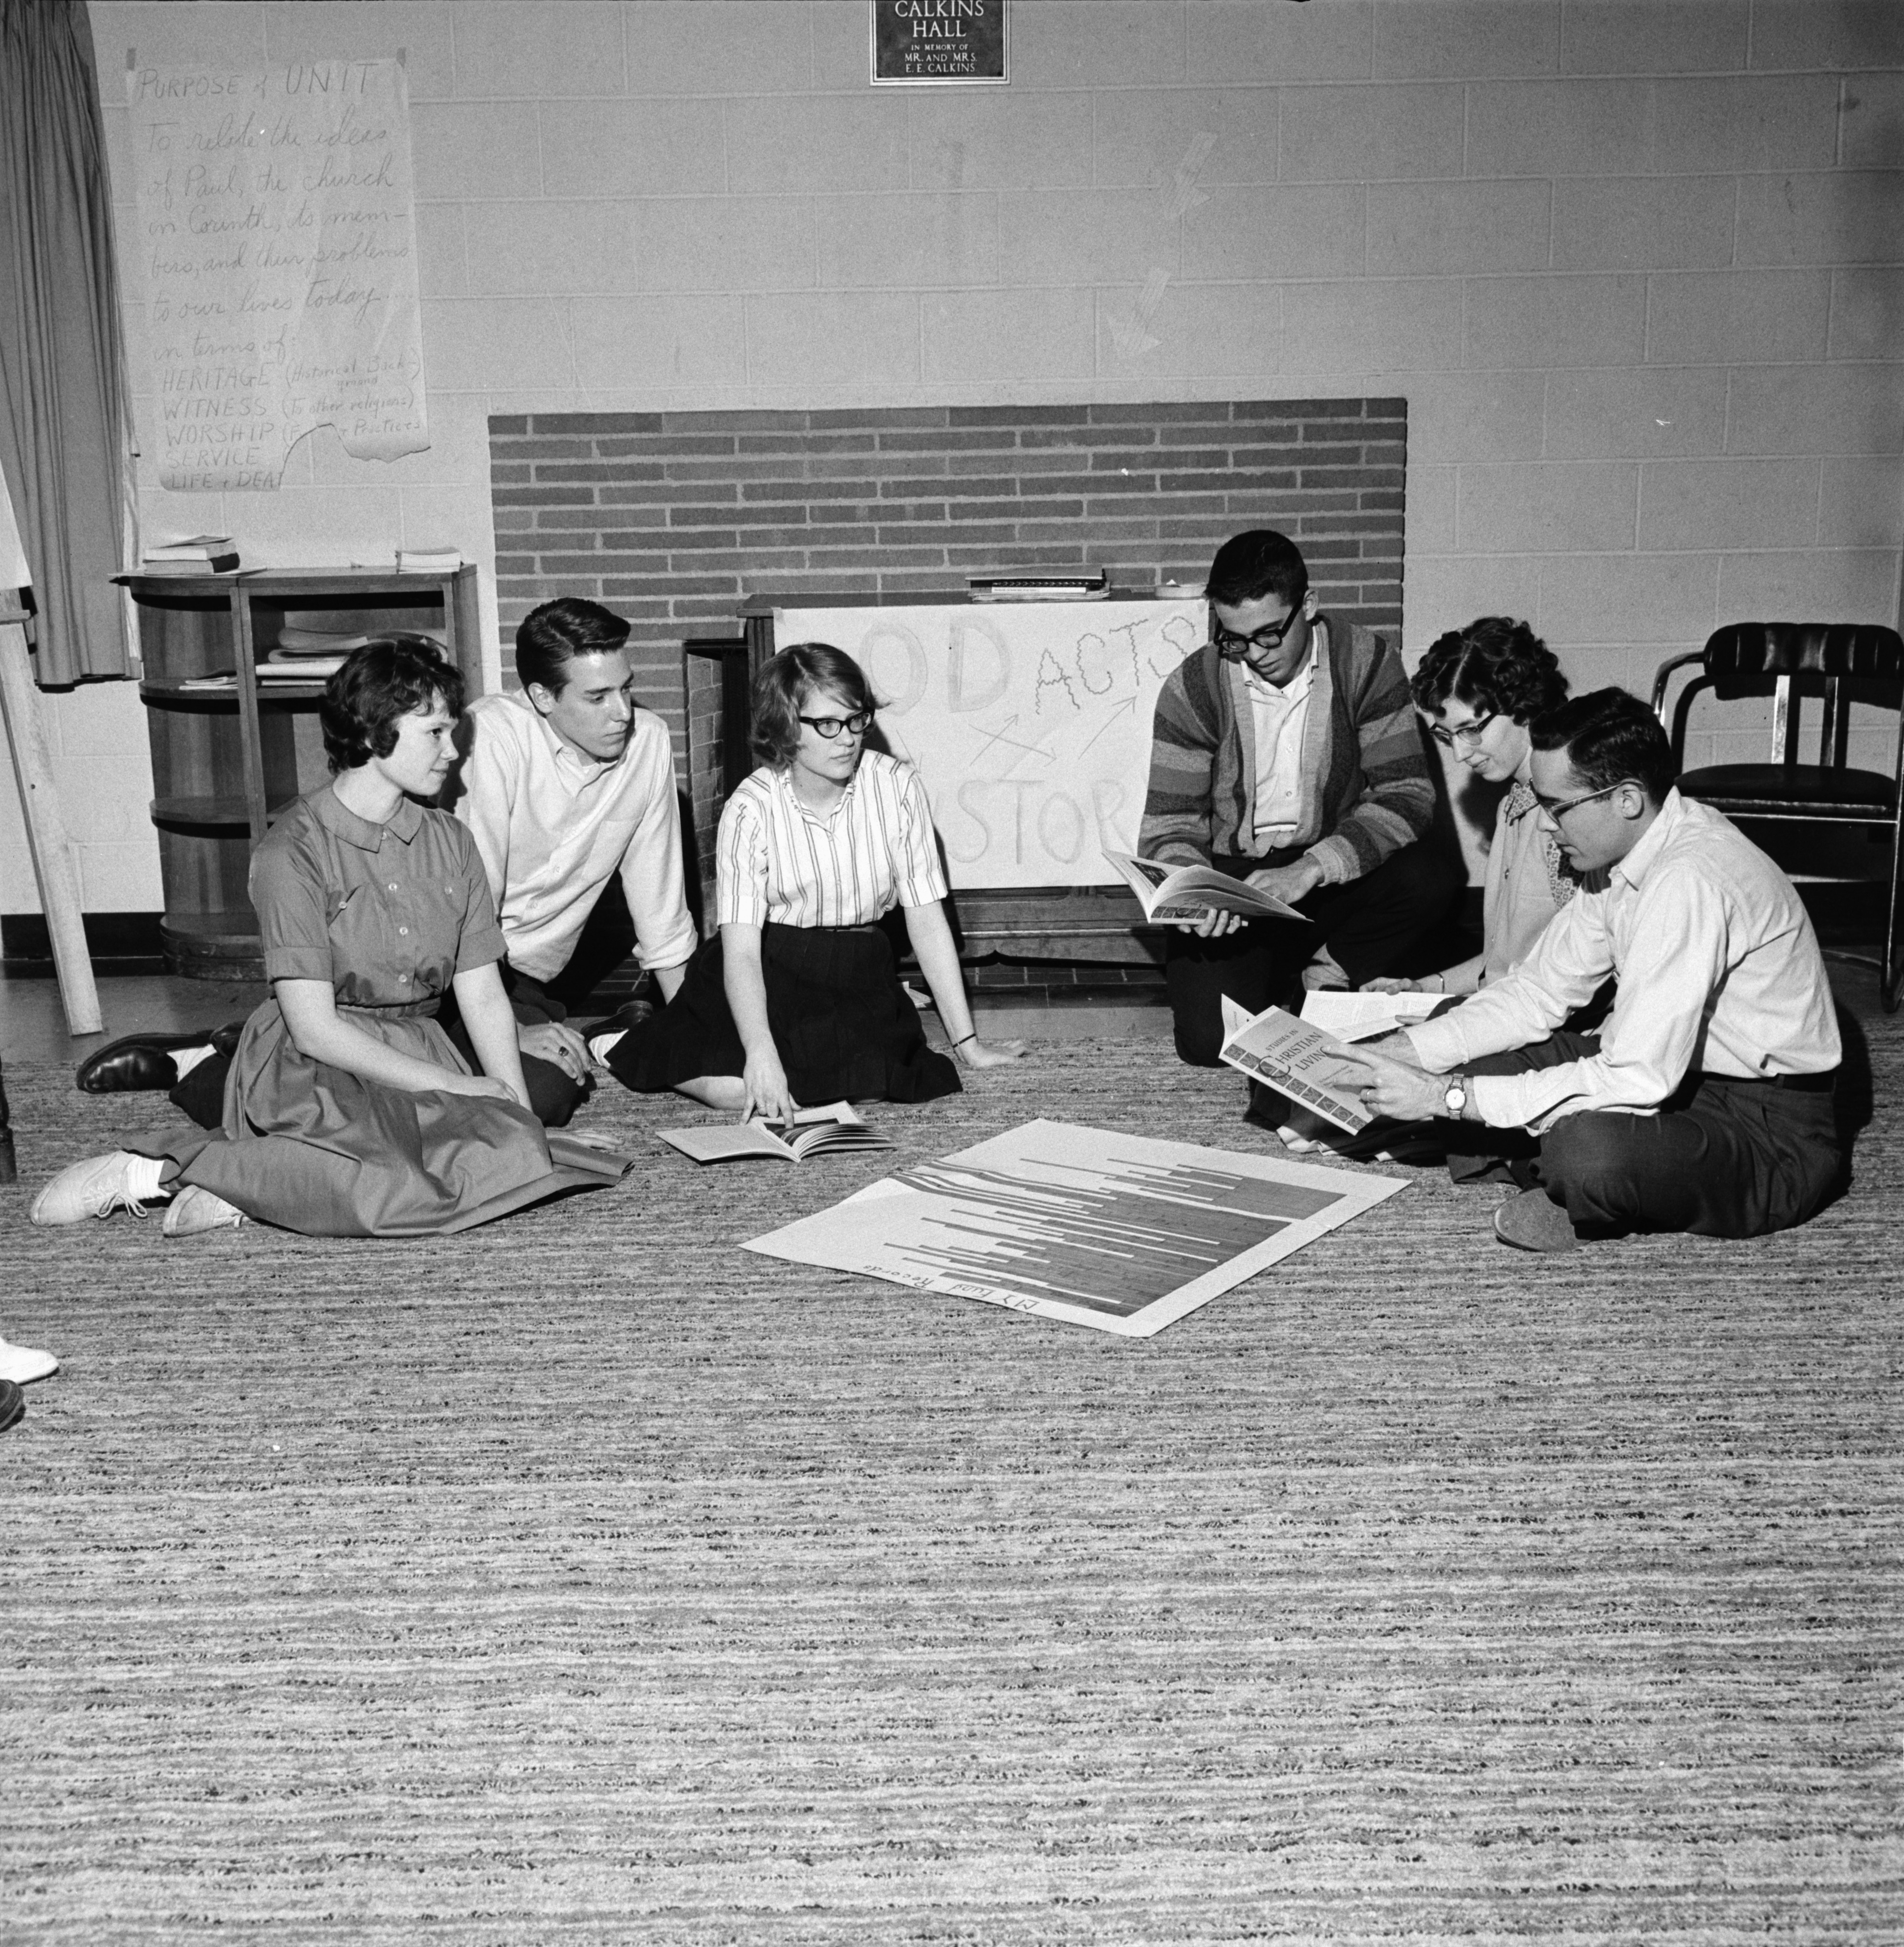 First Methodist Church Senior Youth Group Plans Movie, April 1963 image